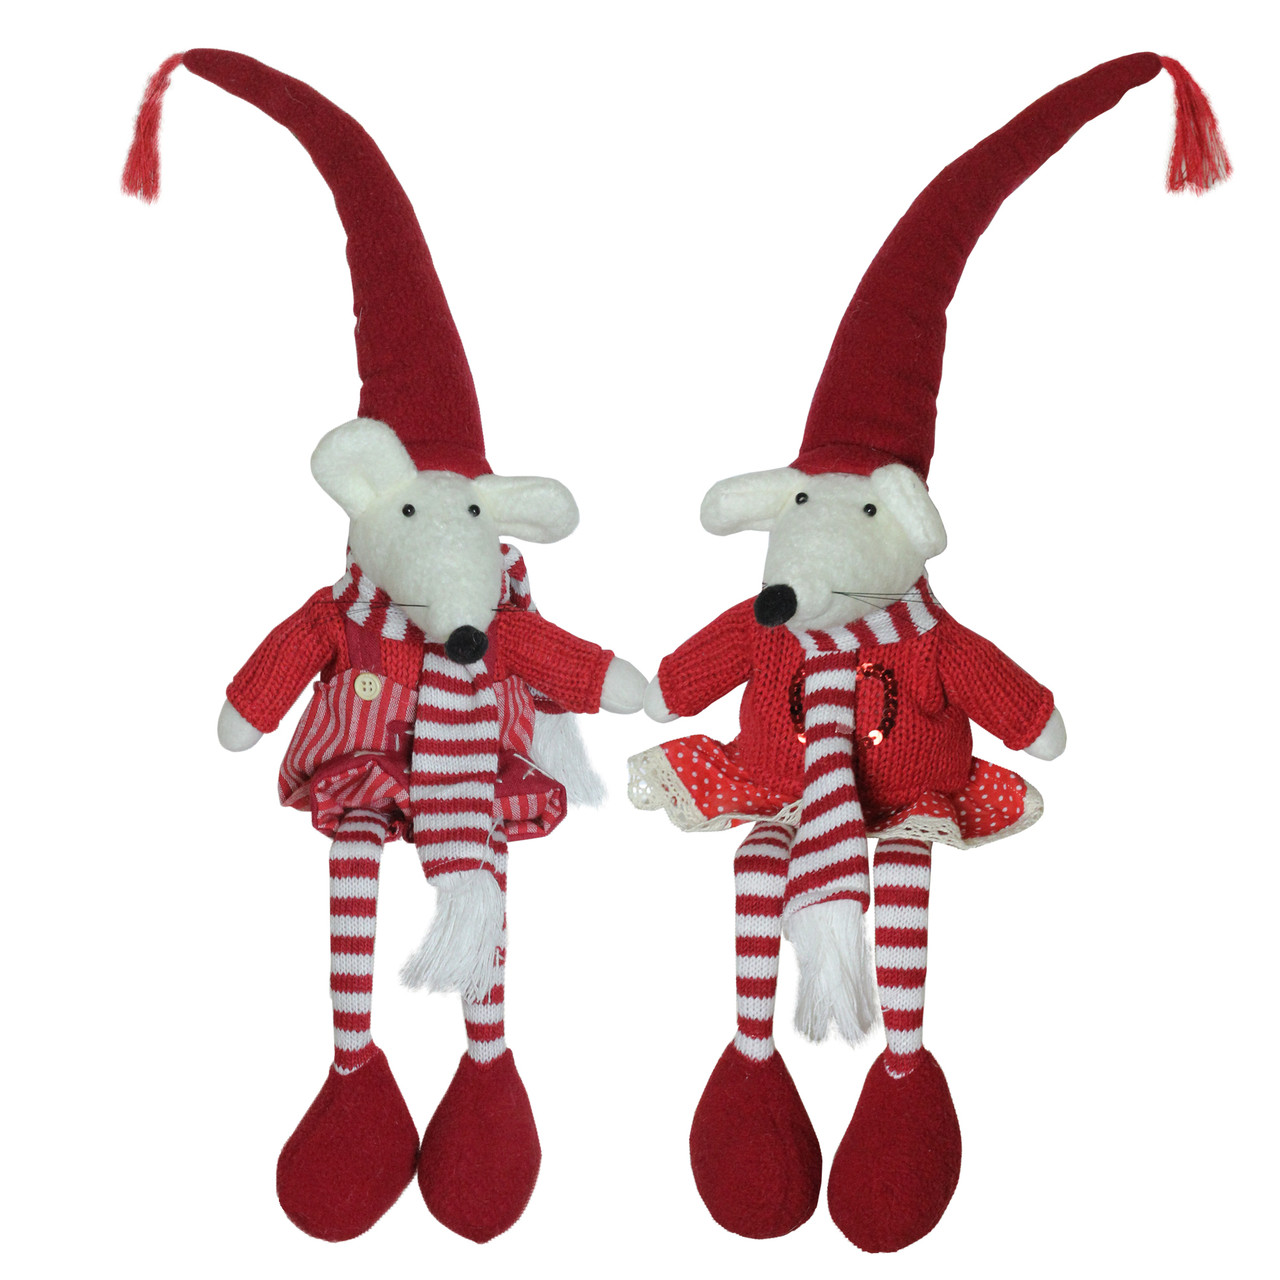 set of 2 plush red and white striped sitting christmas boy and girl mice with heart decorations 15 32637510 - Christmas Mice Decorations